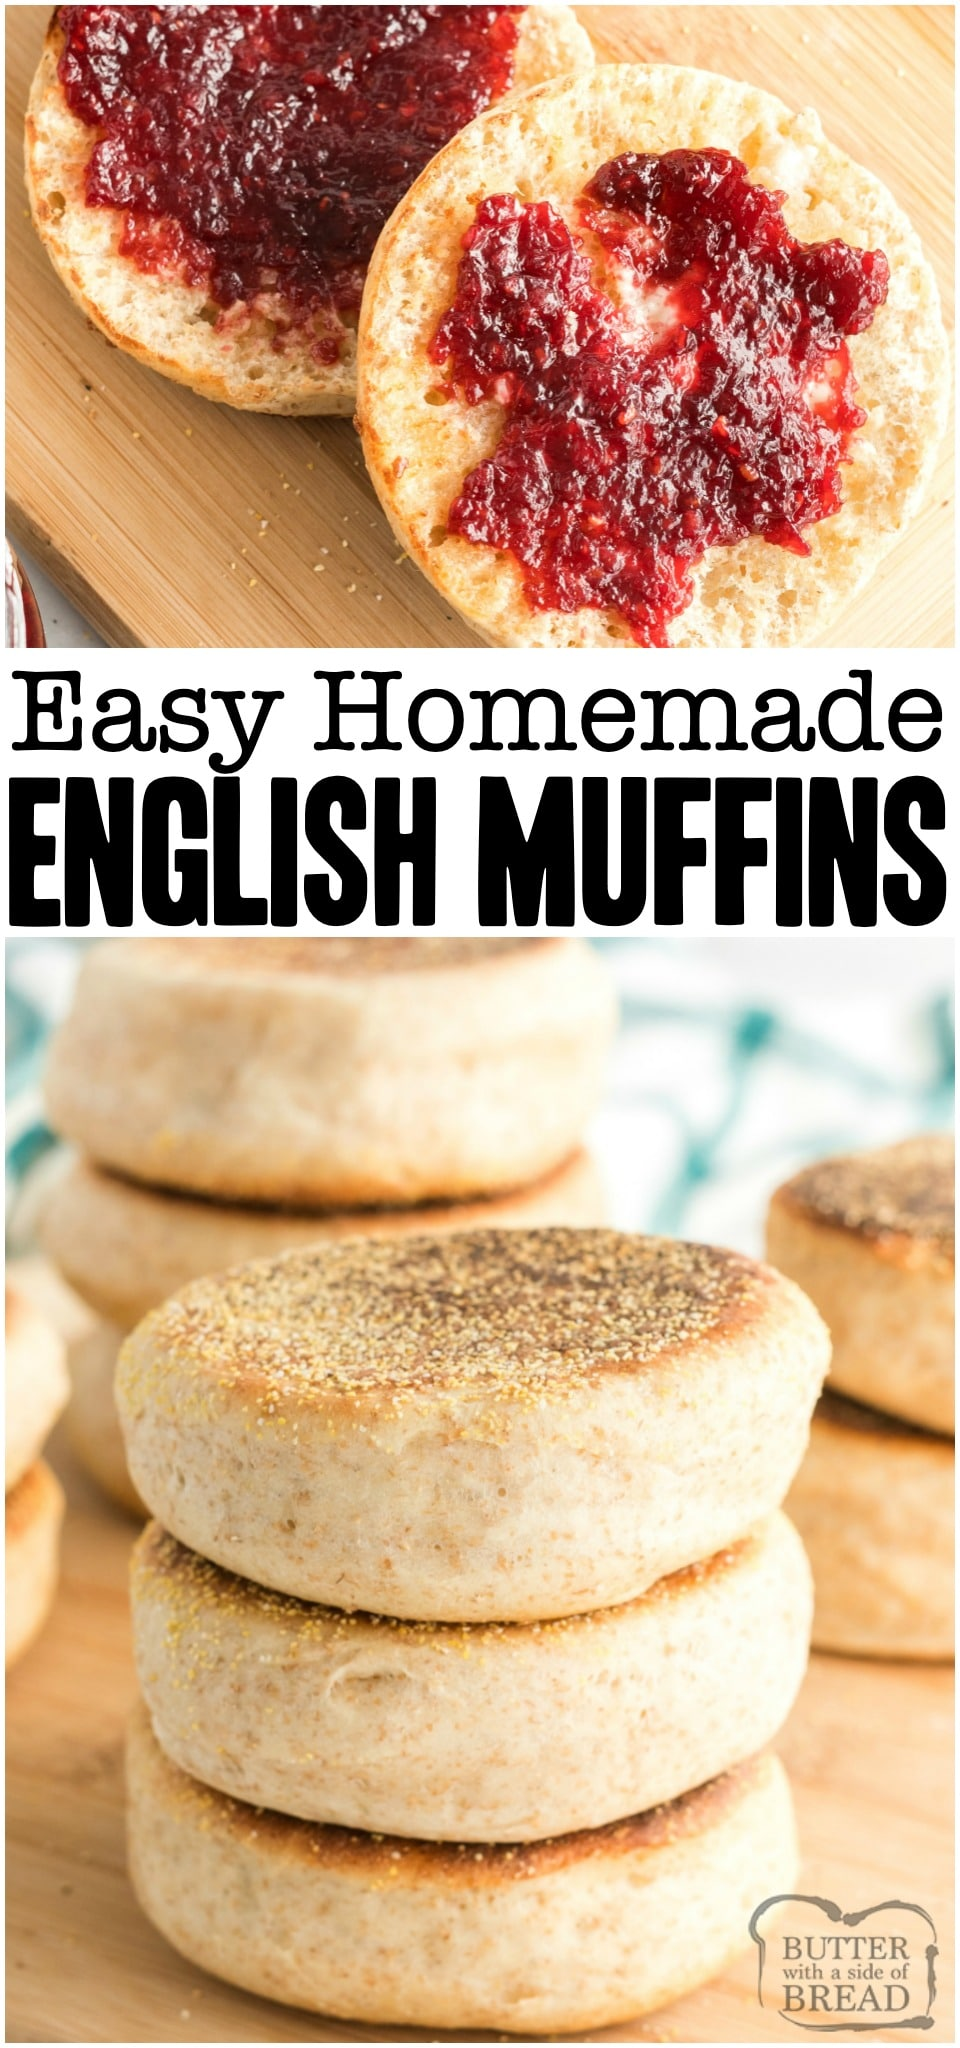 Homemade English Muffins are so simple to make that you'll never want to buy store-bought again. Fluffy English muffin recipe full of nooks and crannies! You'll love everything from the smell to the textures and flavors. #bread #yeast #homemade #muffins #EnglishMuffins #recipe from BUTTER WITH A SIDE OF BREAD